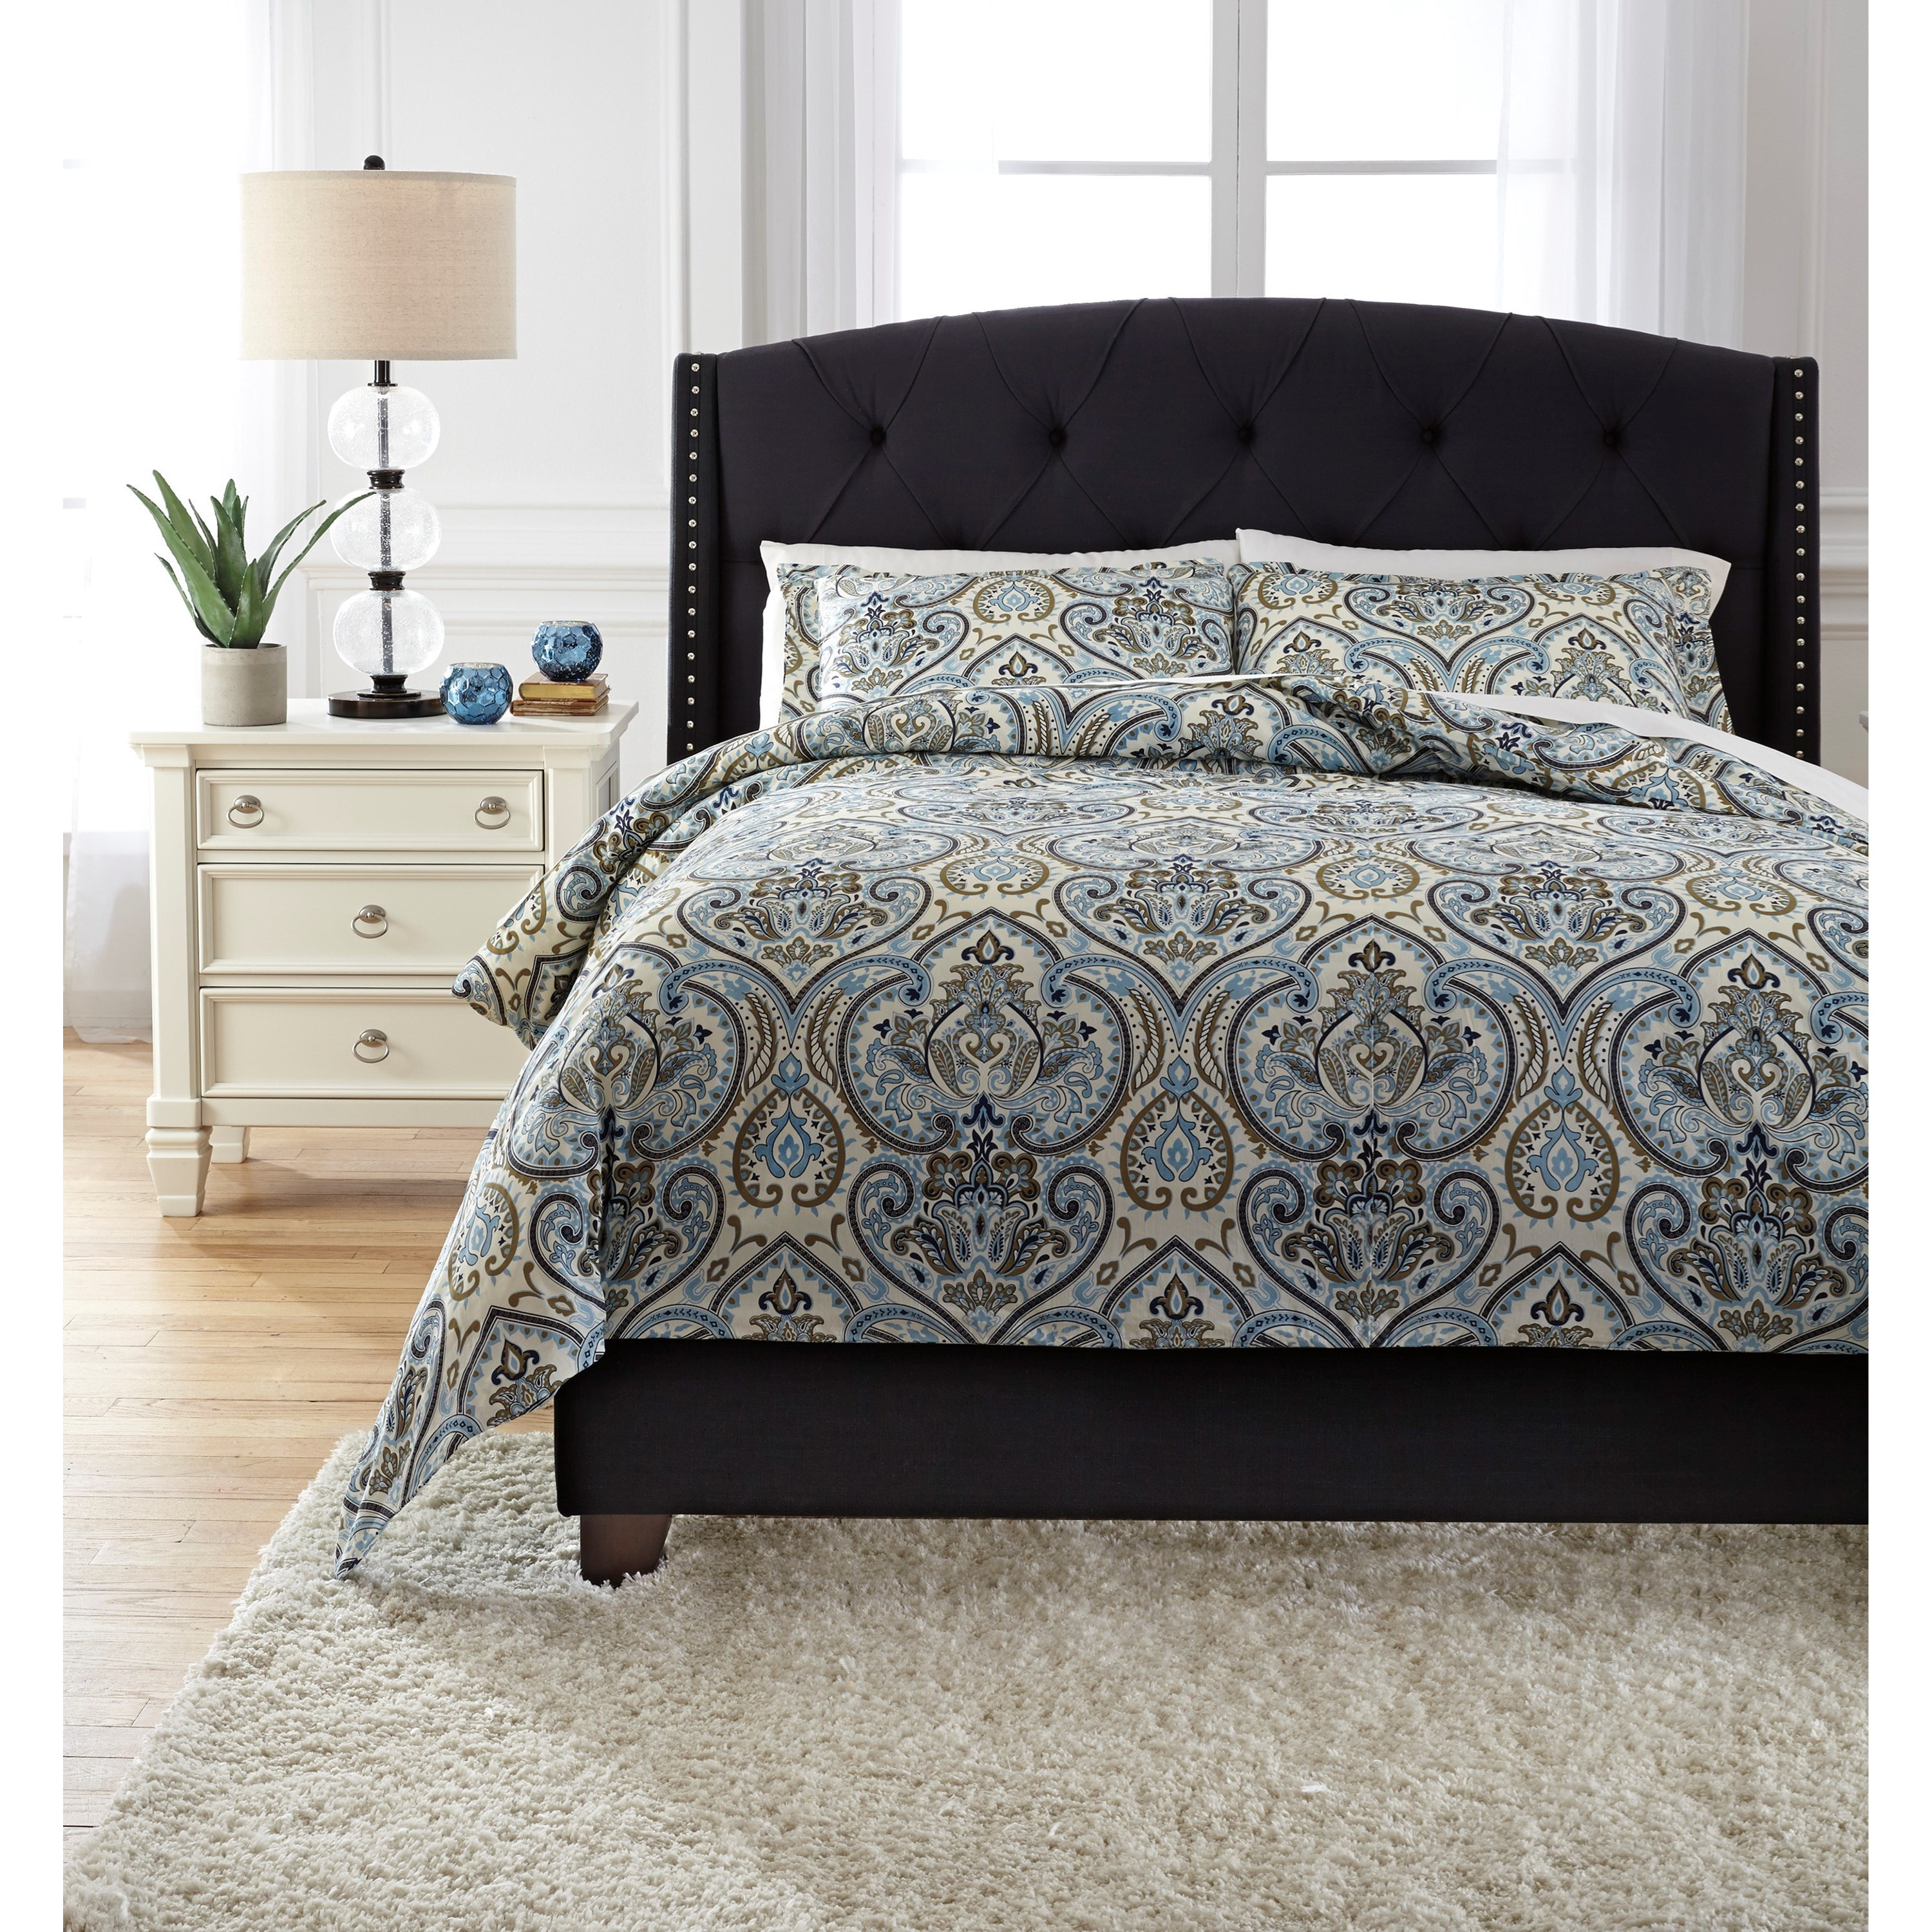 Signature Design by Ashley Bedding Sets King Soliel Multi Duvet Cover Set - Item Number: Q740003K